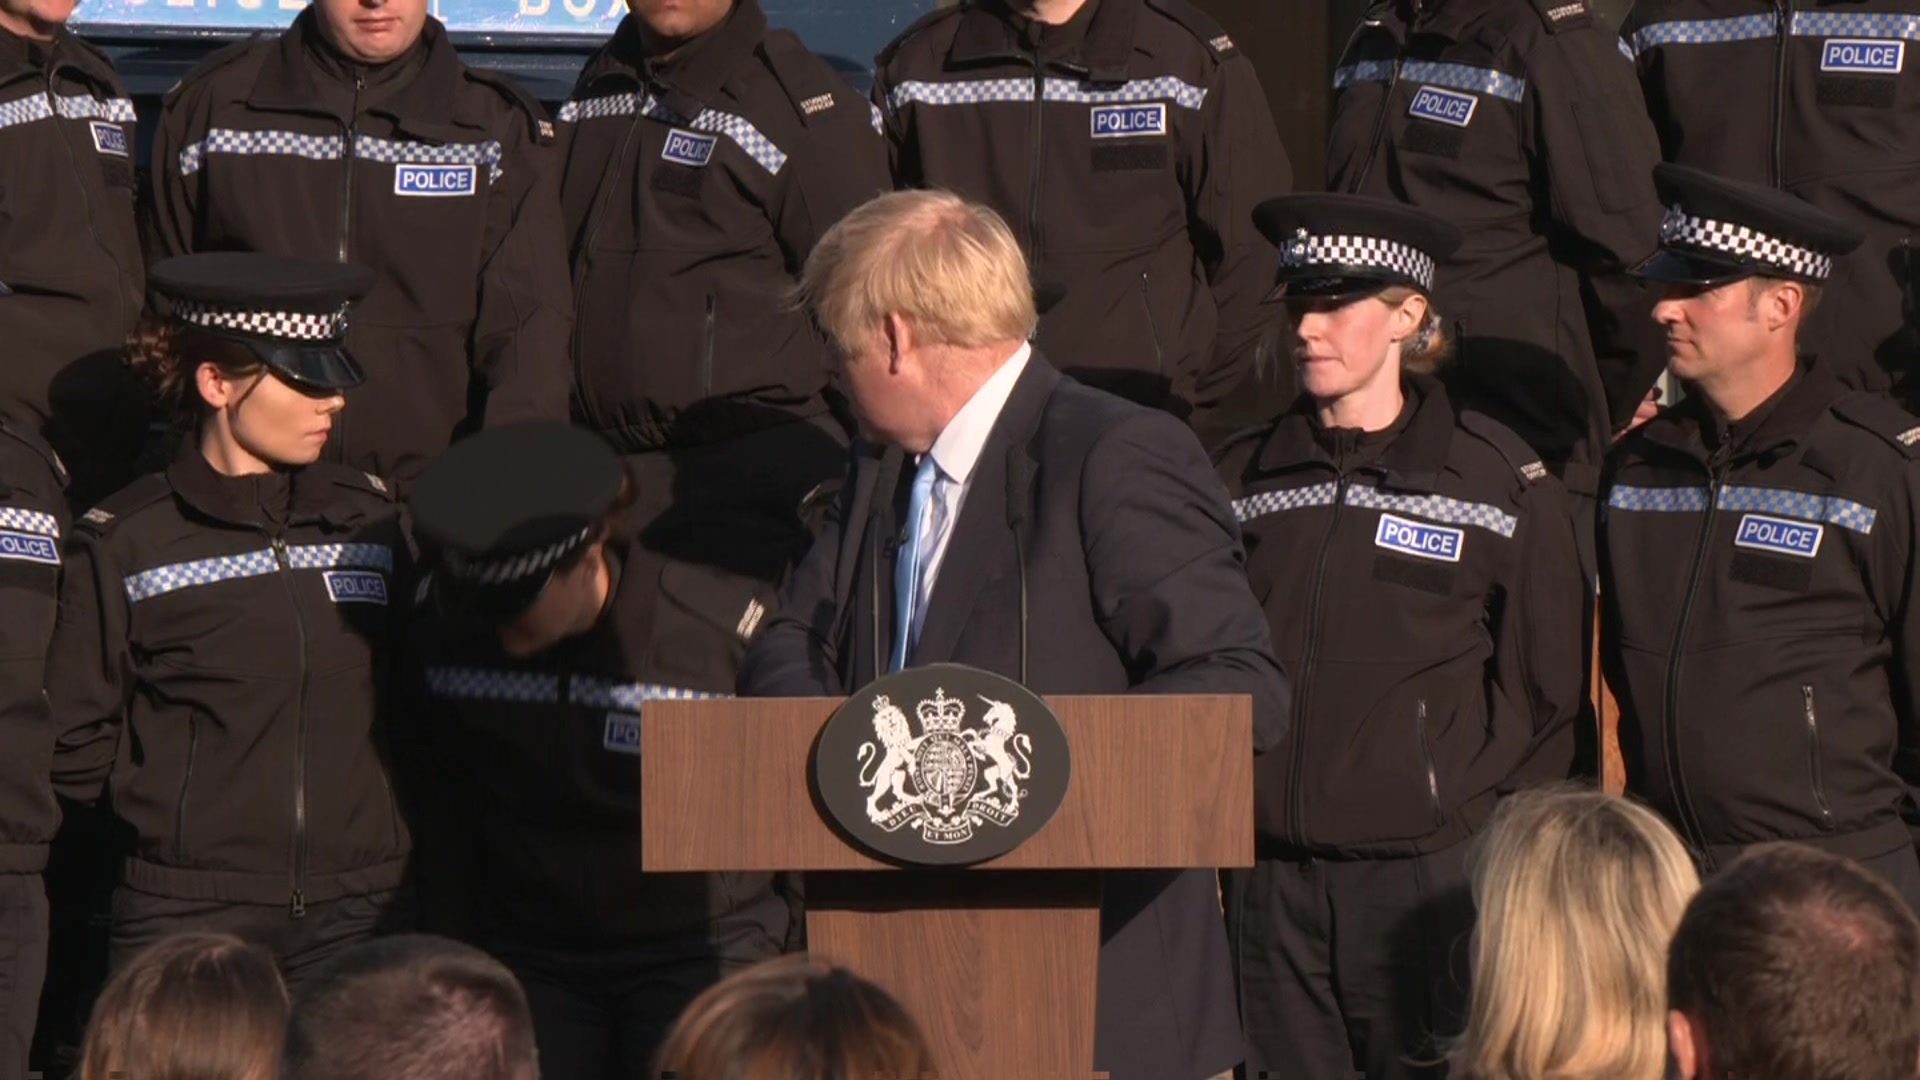 PM 'so sorry' as officer forced to take a seat